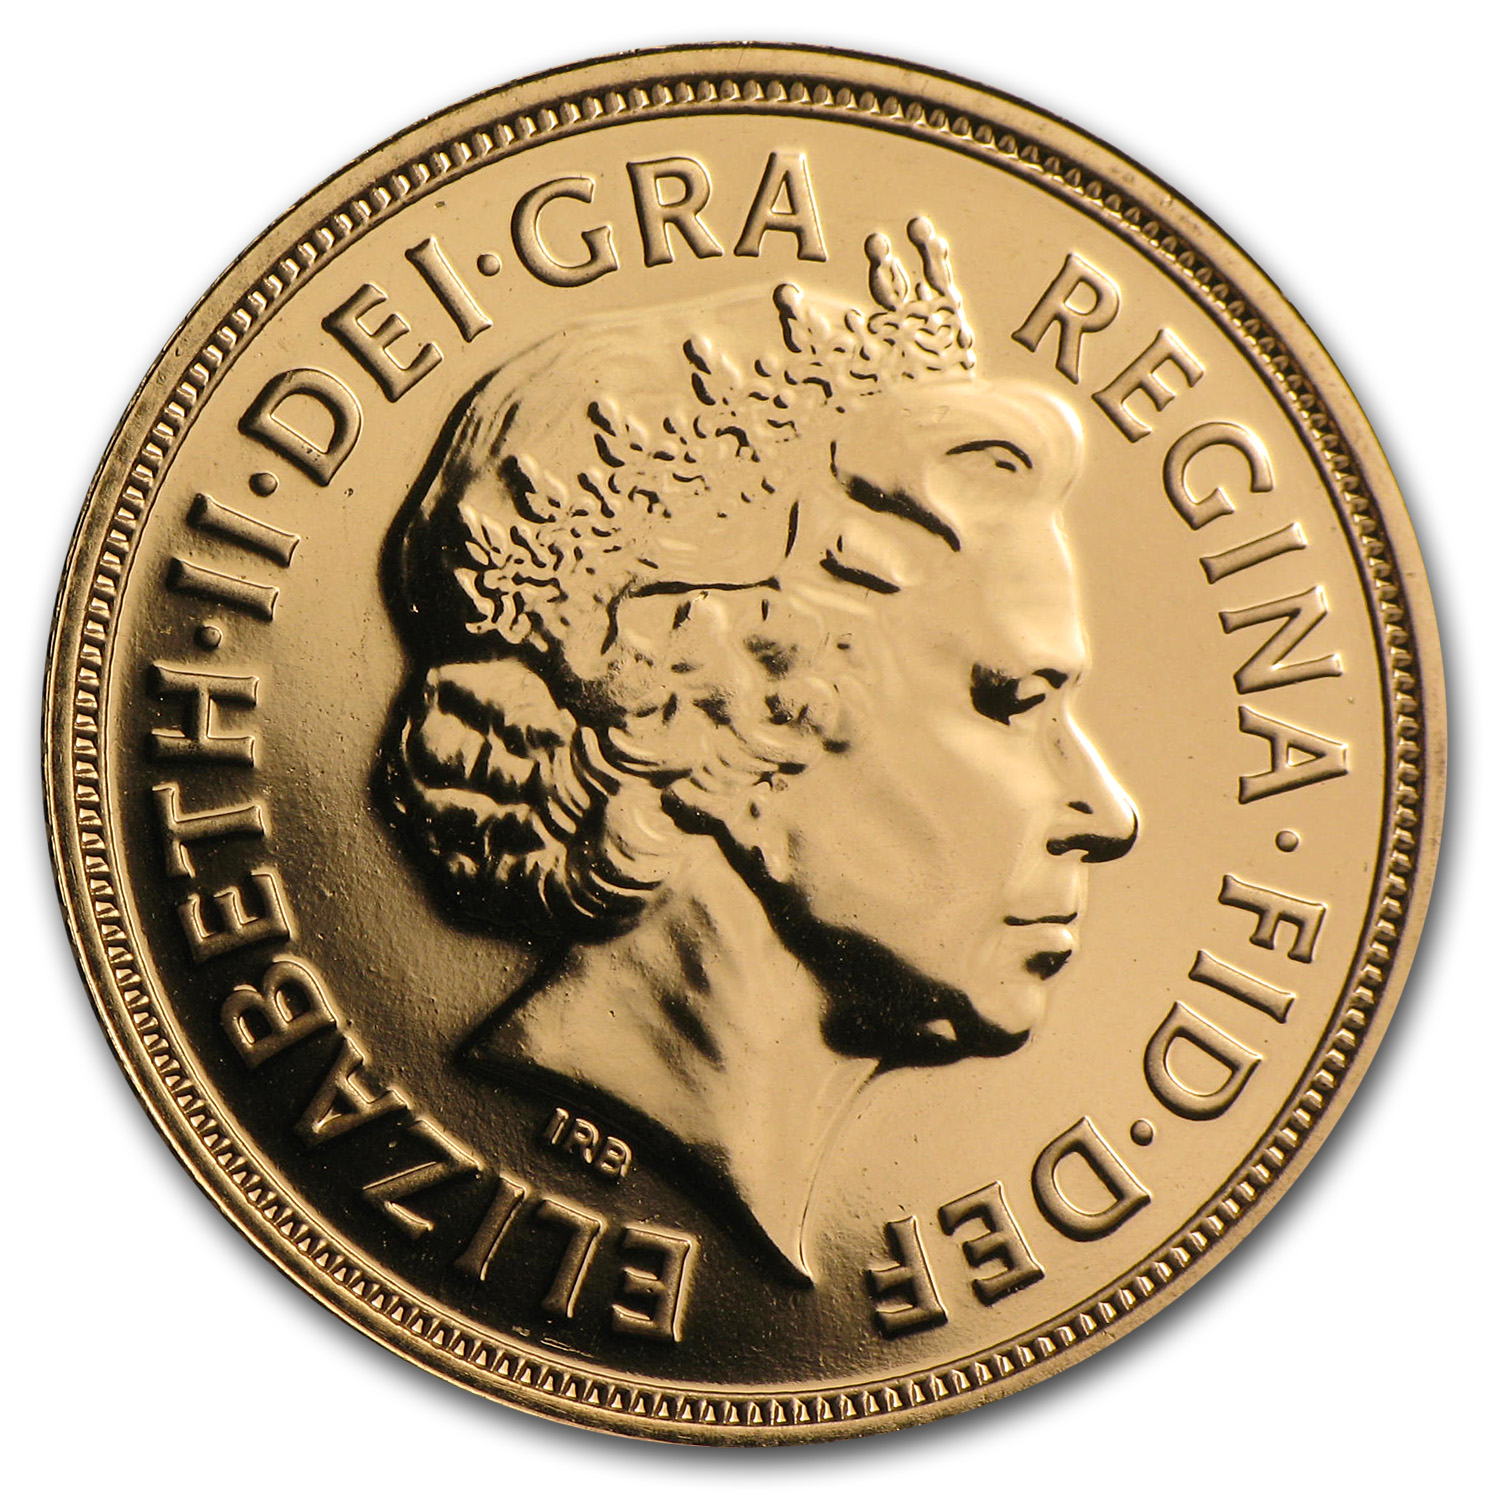 Great Britain 2014 Gold Sovereigns BU (New) AGW .2354